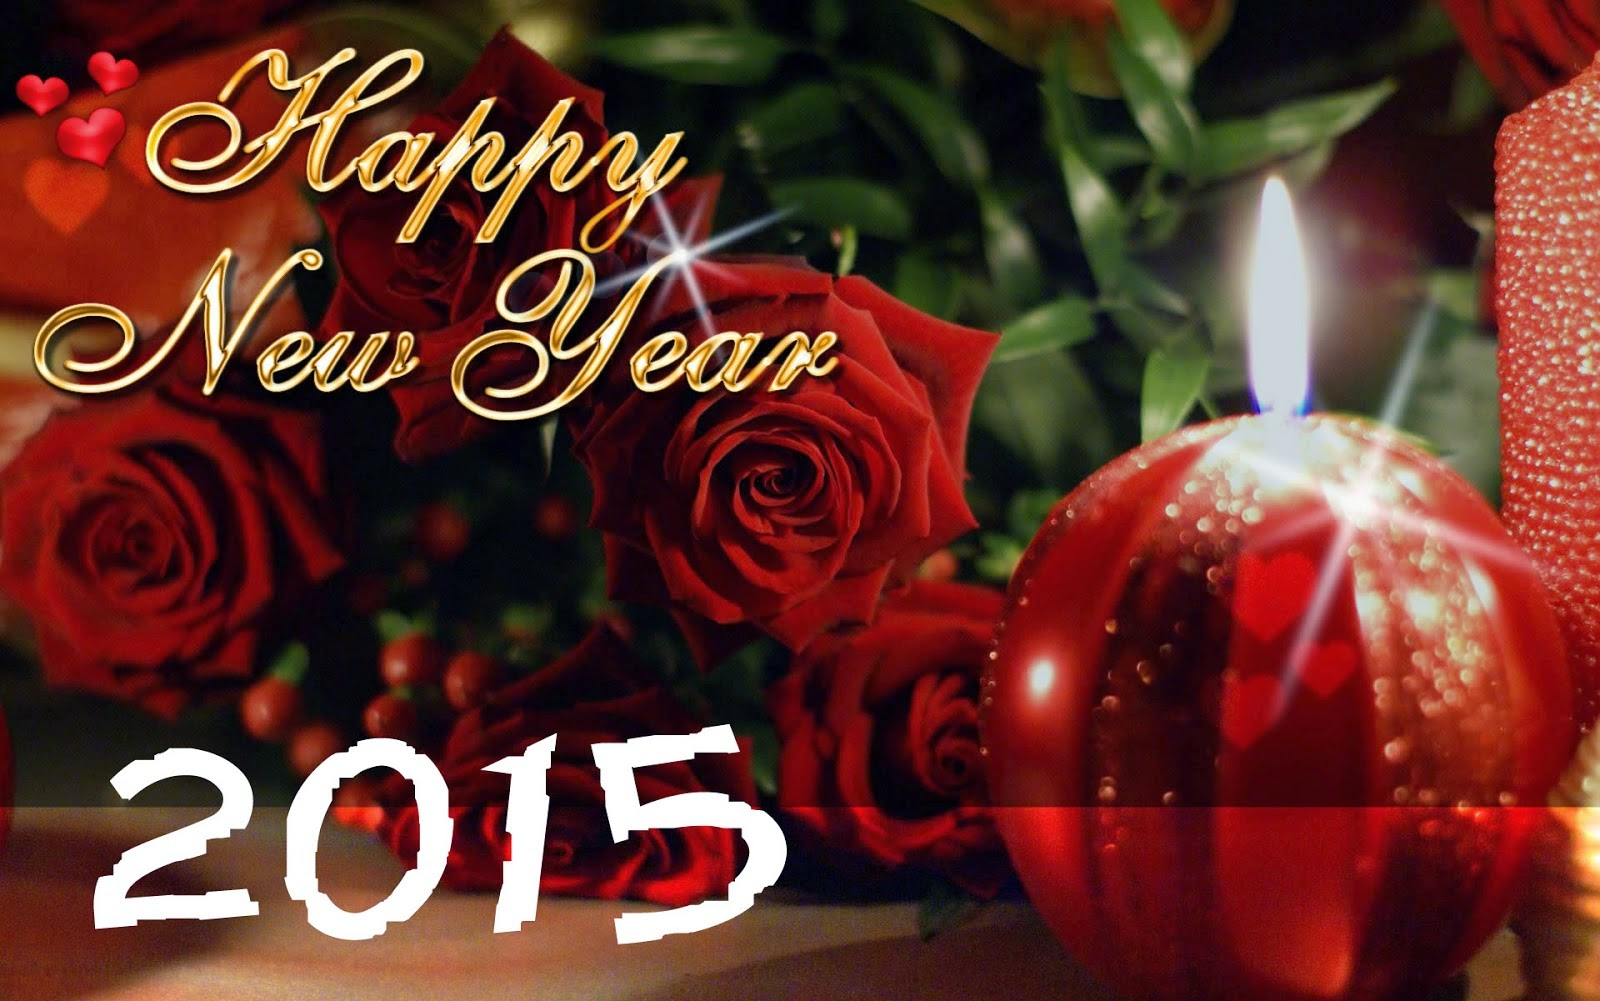 wallpaper 2015 free download in happy new year